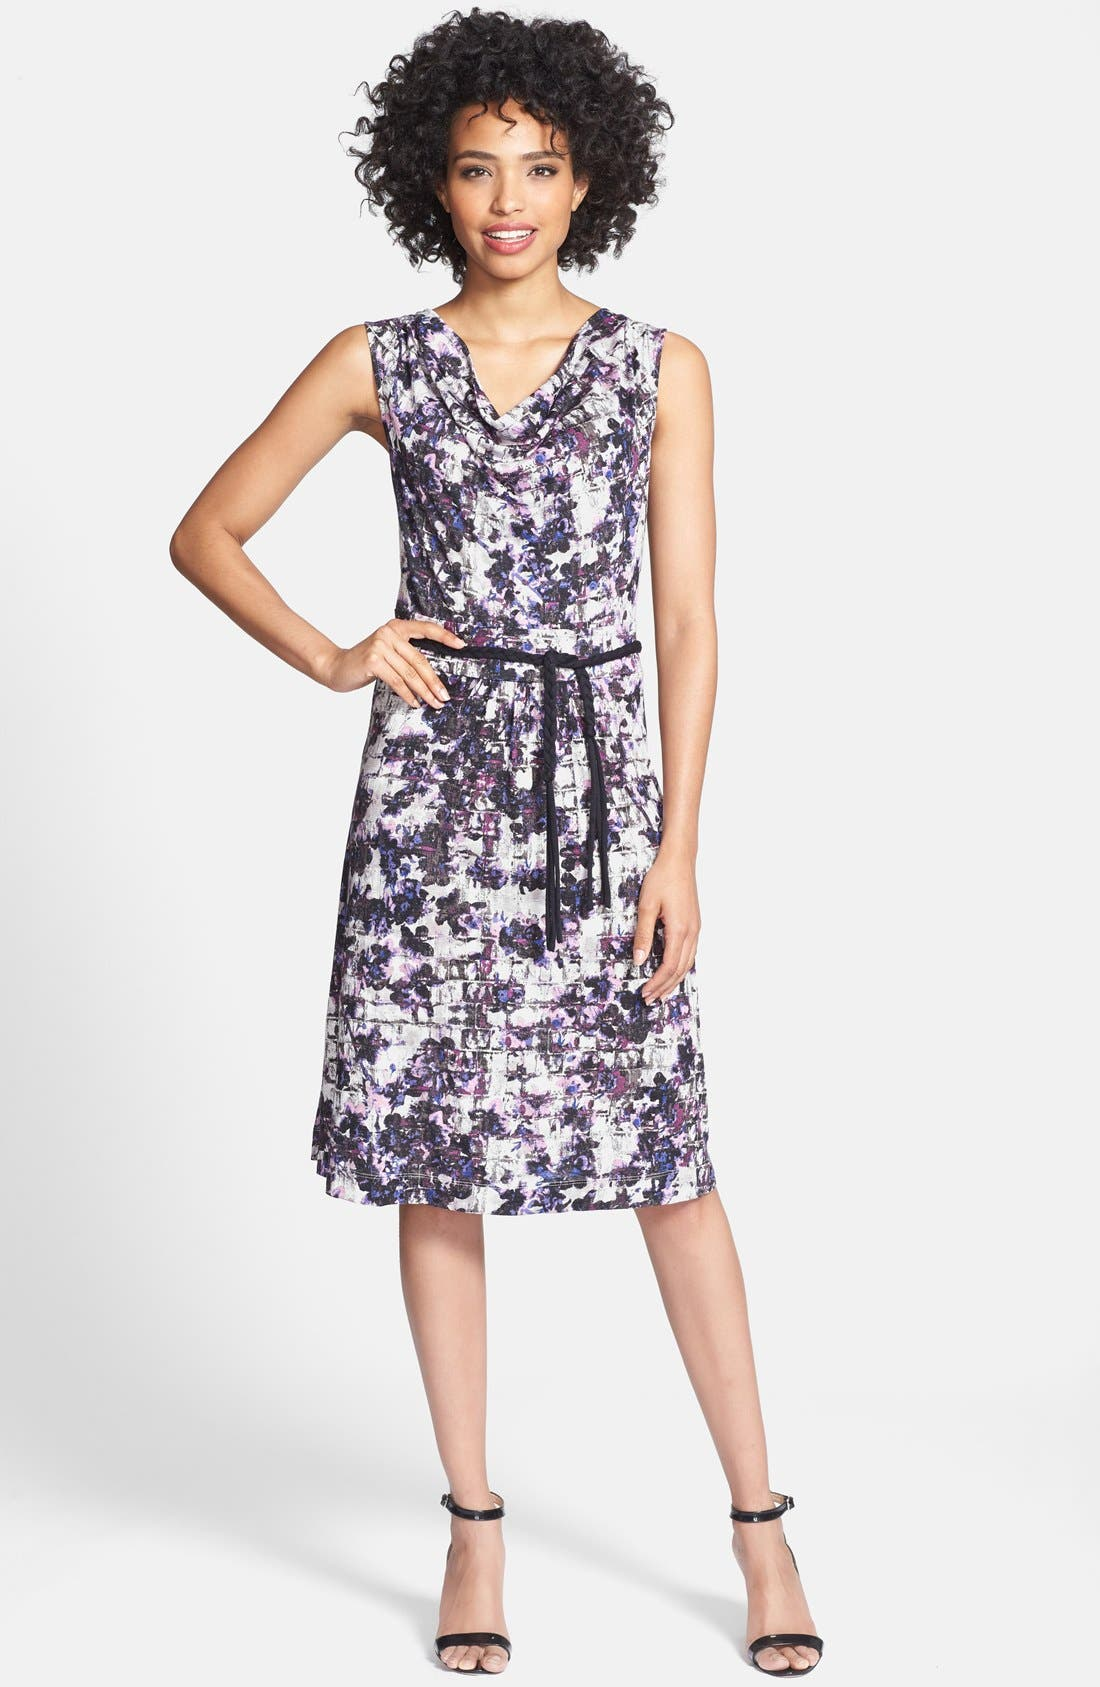 Alternate Image 1 Selected - NIC+ZOE 'Fossilized Vines' Belted Jersey Dress